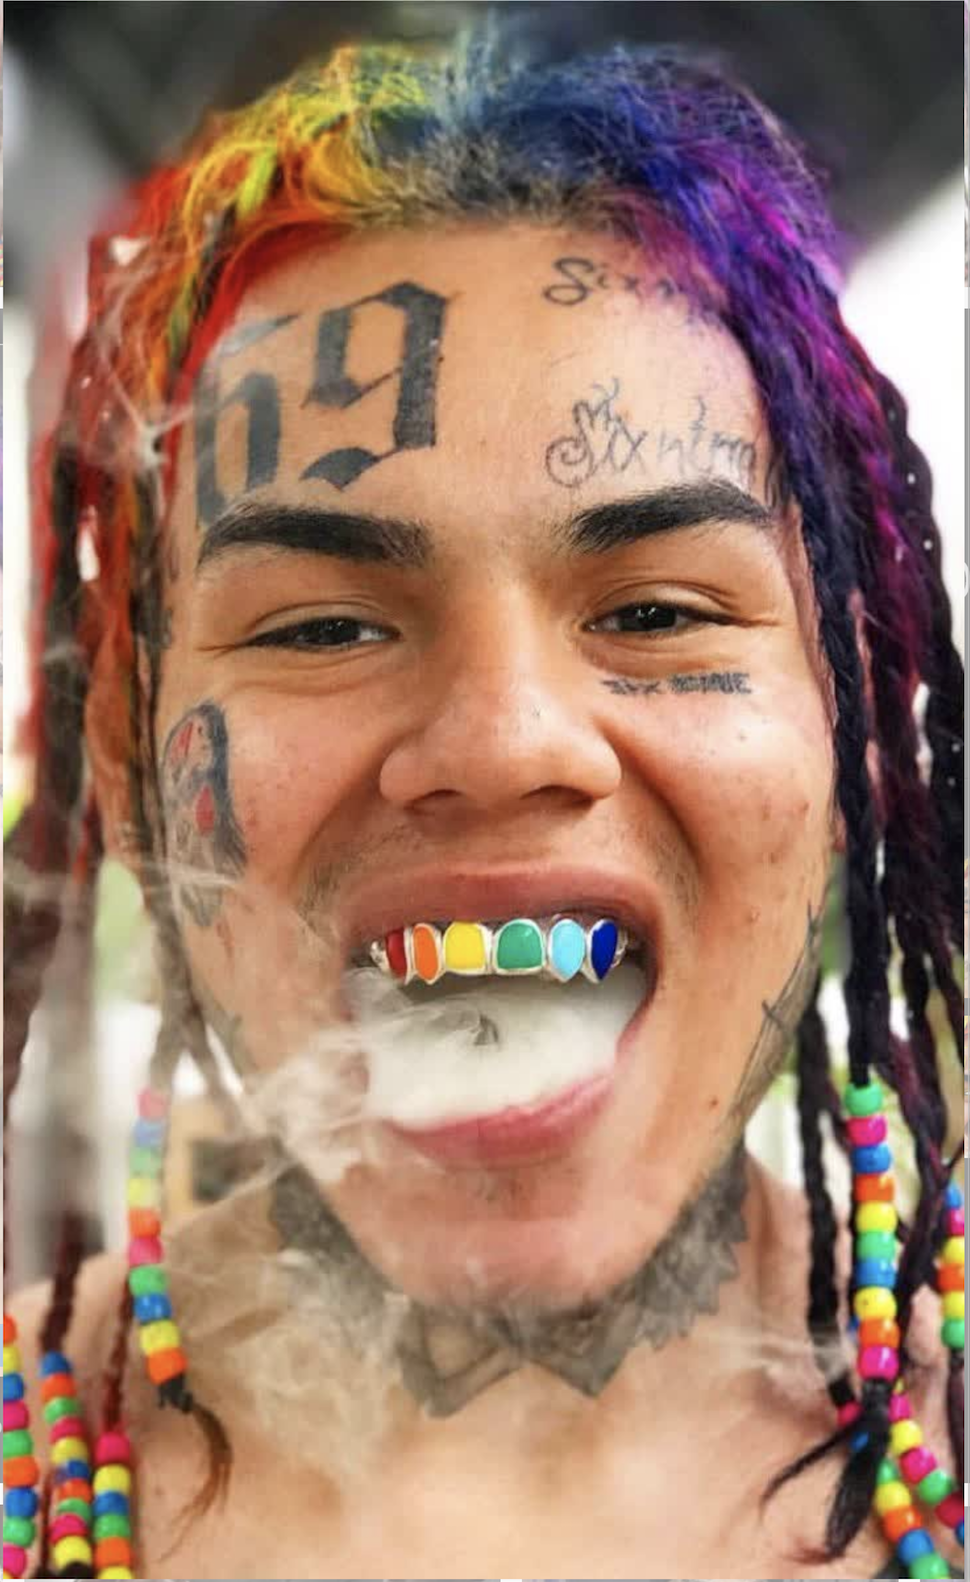 Pin by suleiman alsadig on 6ix 9ine Rapper, Perfect